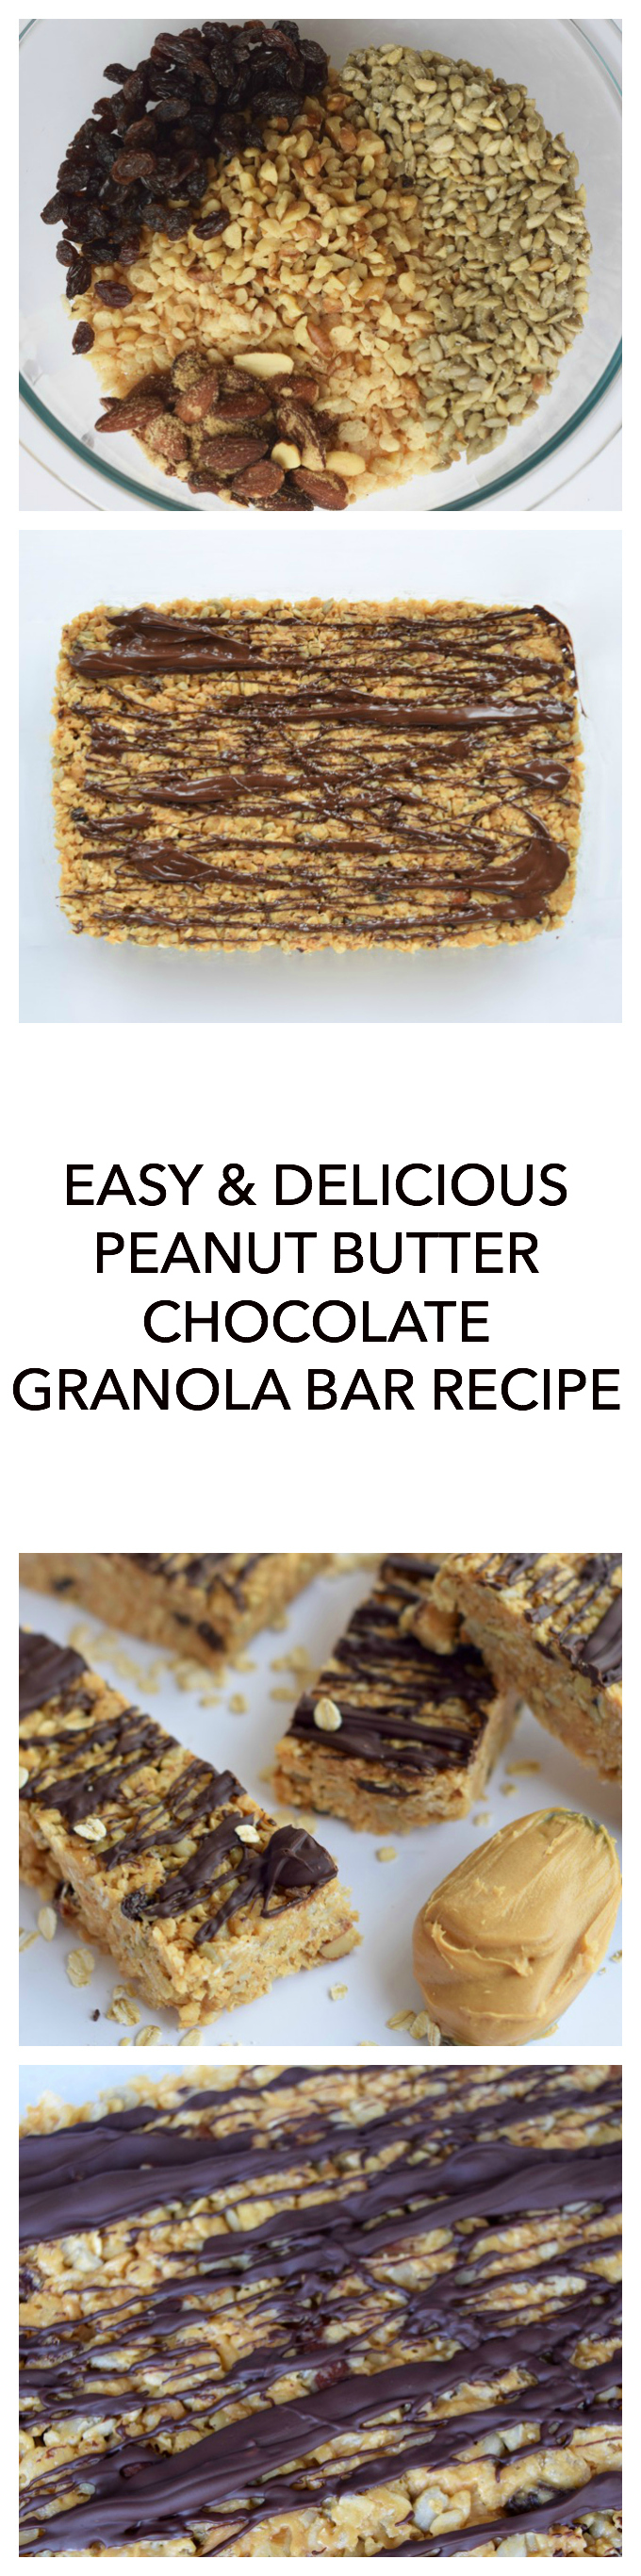 Peanut Butter Chocolate Granola Bars Recipe